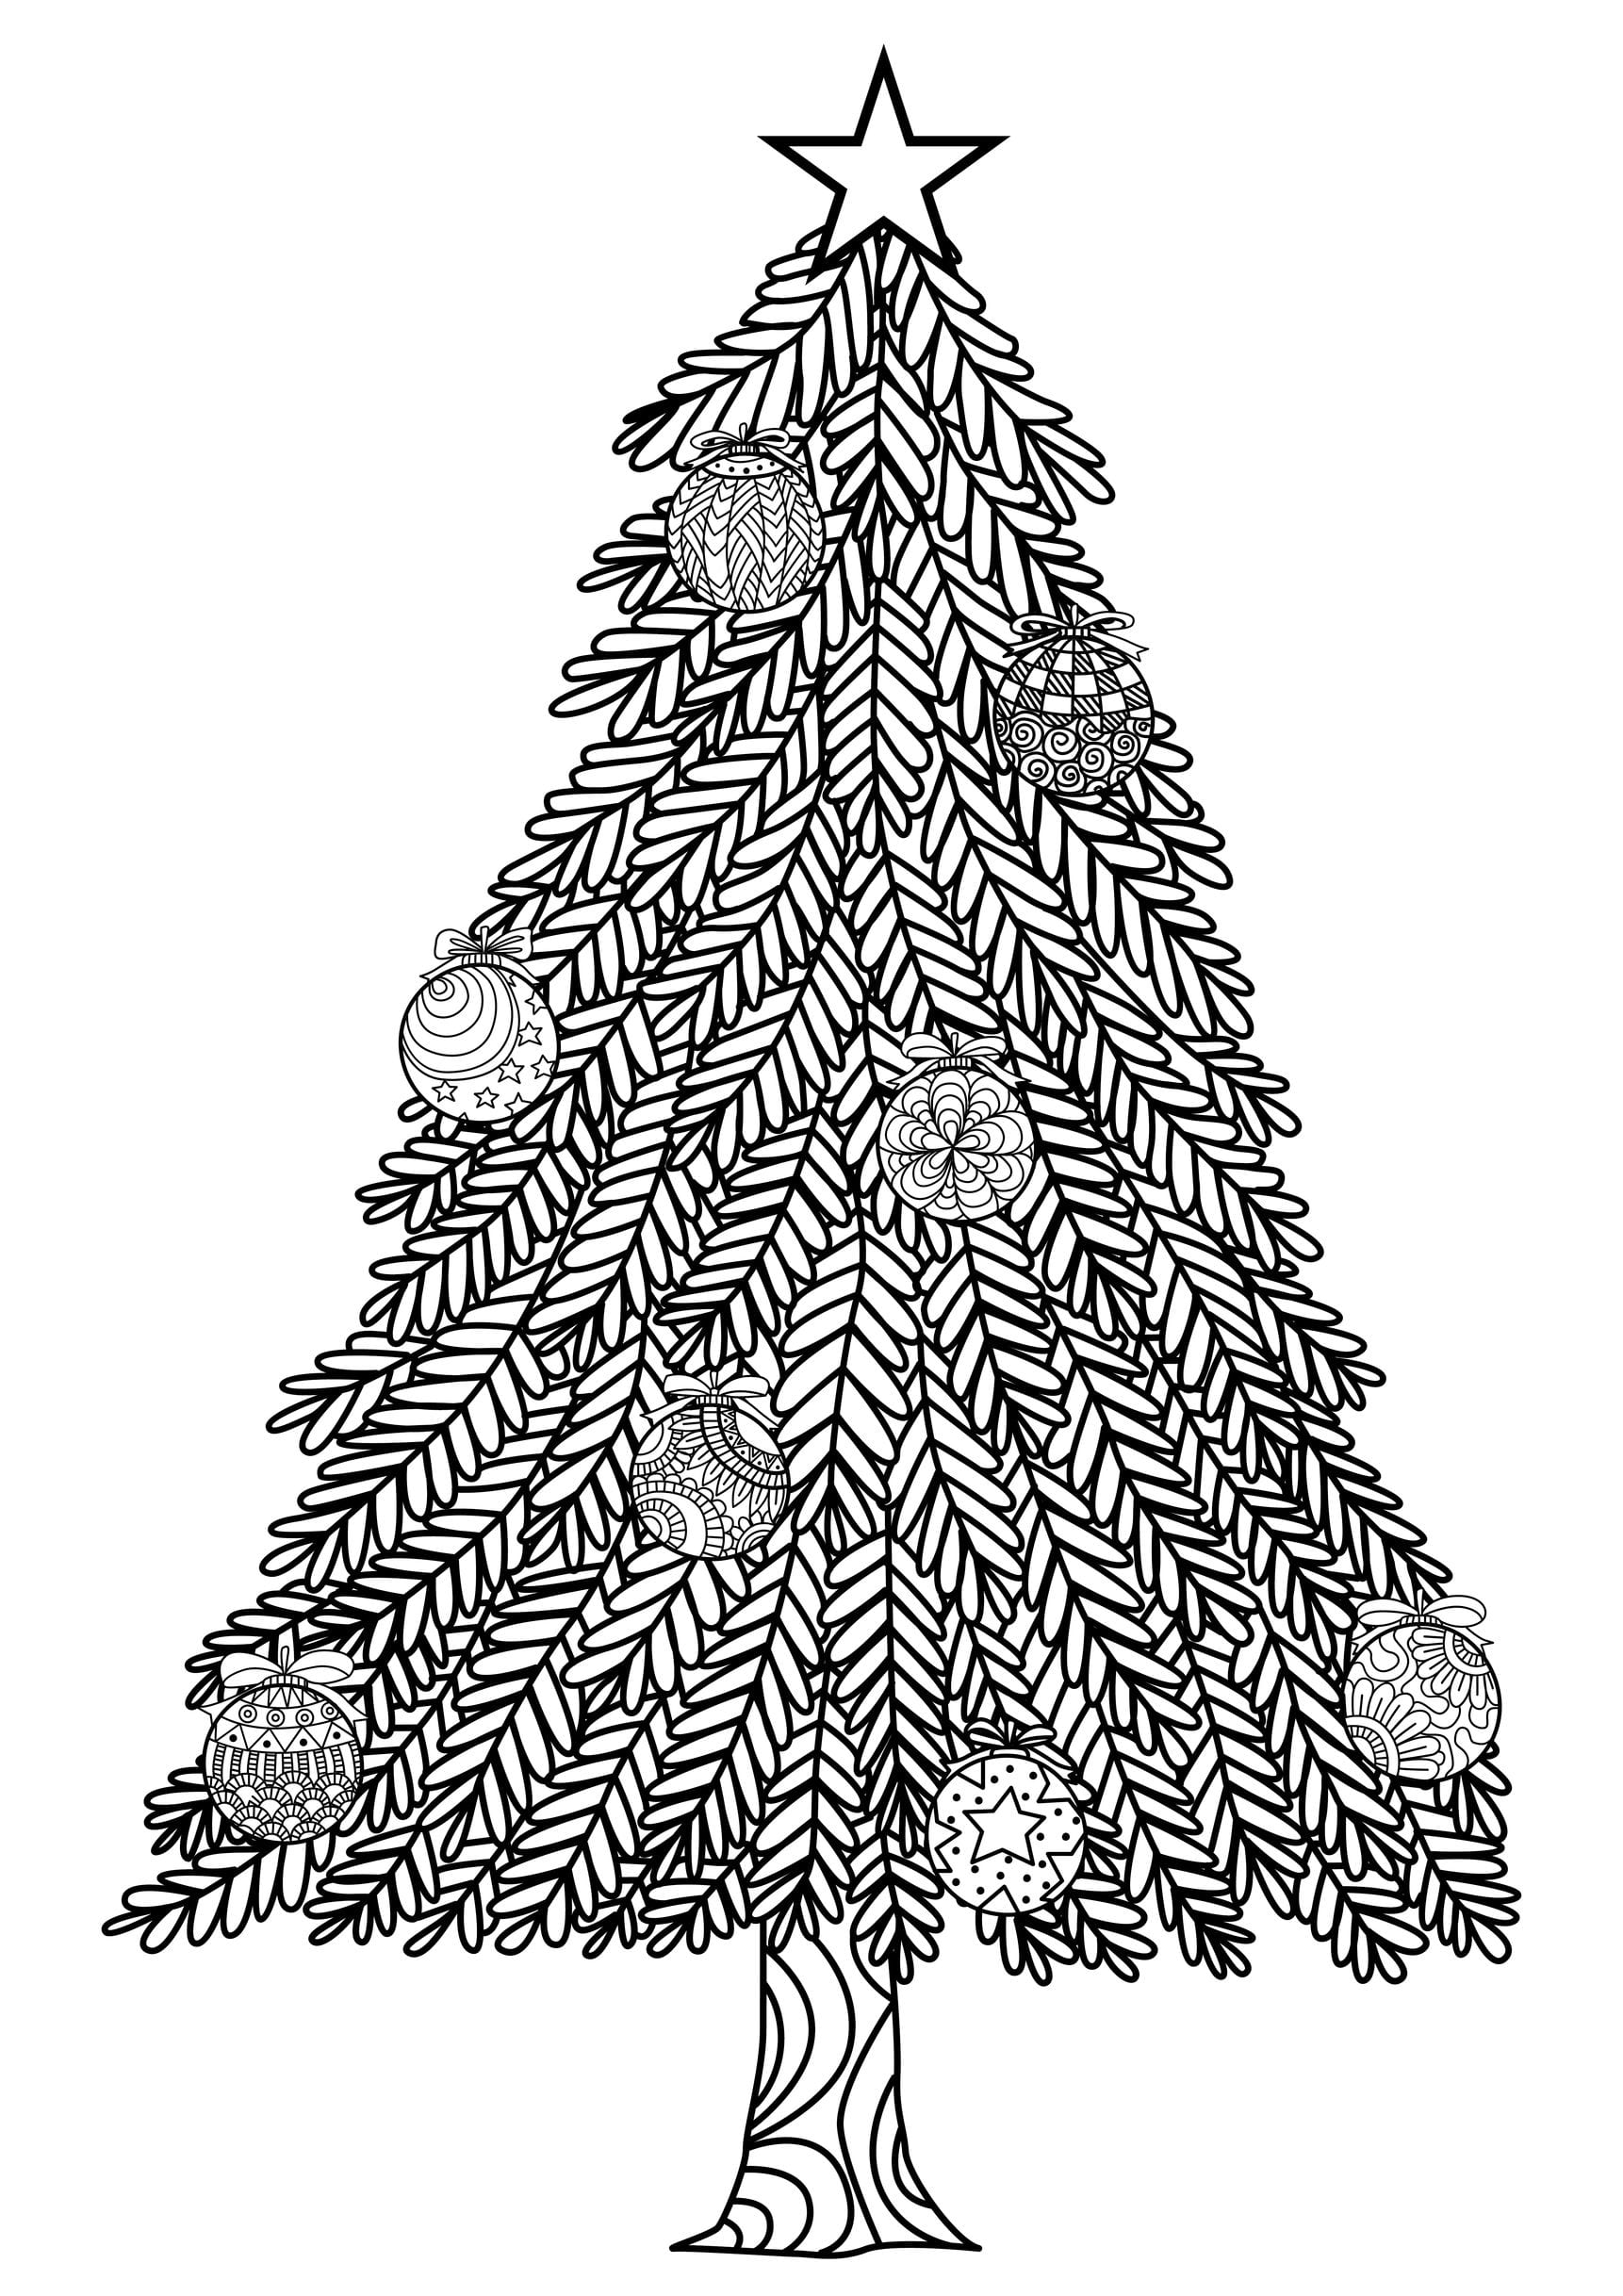 Blank Christmas Tree Coloring Page For Pages